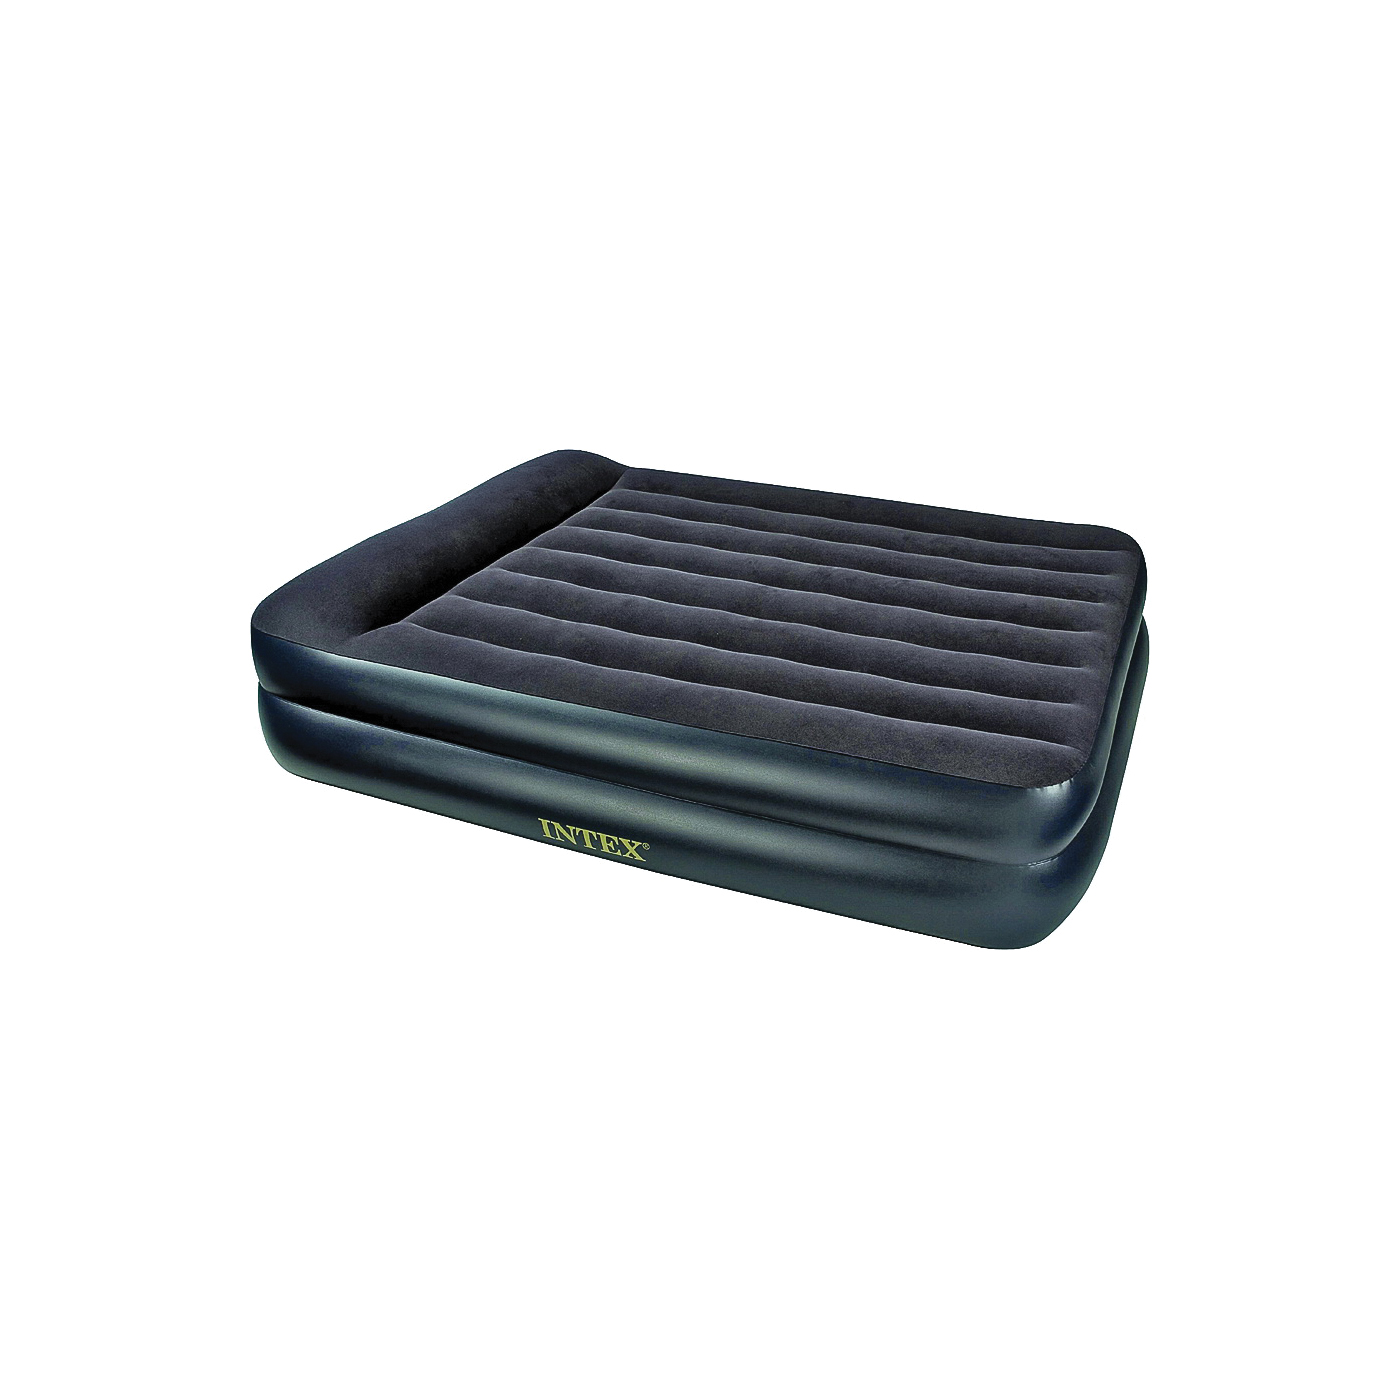 Picture of INTEX Dura-Beam 64423E Pillow Rest Raised Airbed Mattress, 80 in L, 62 in W, Queen, Blue